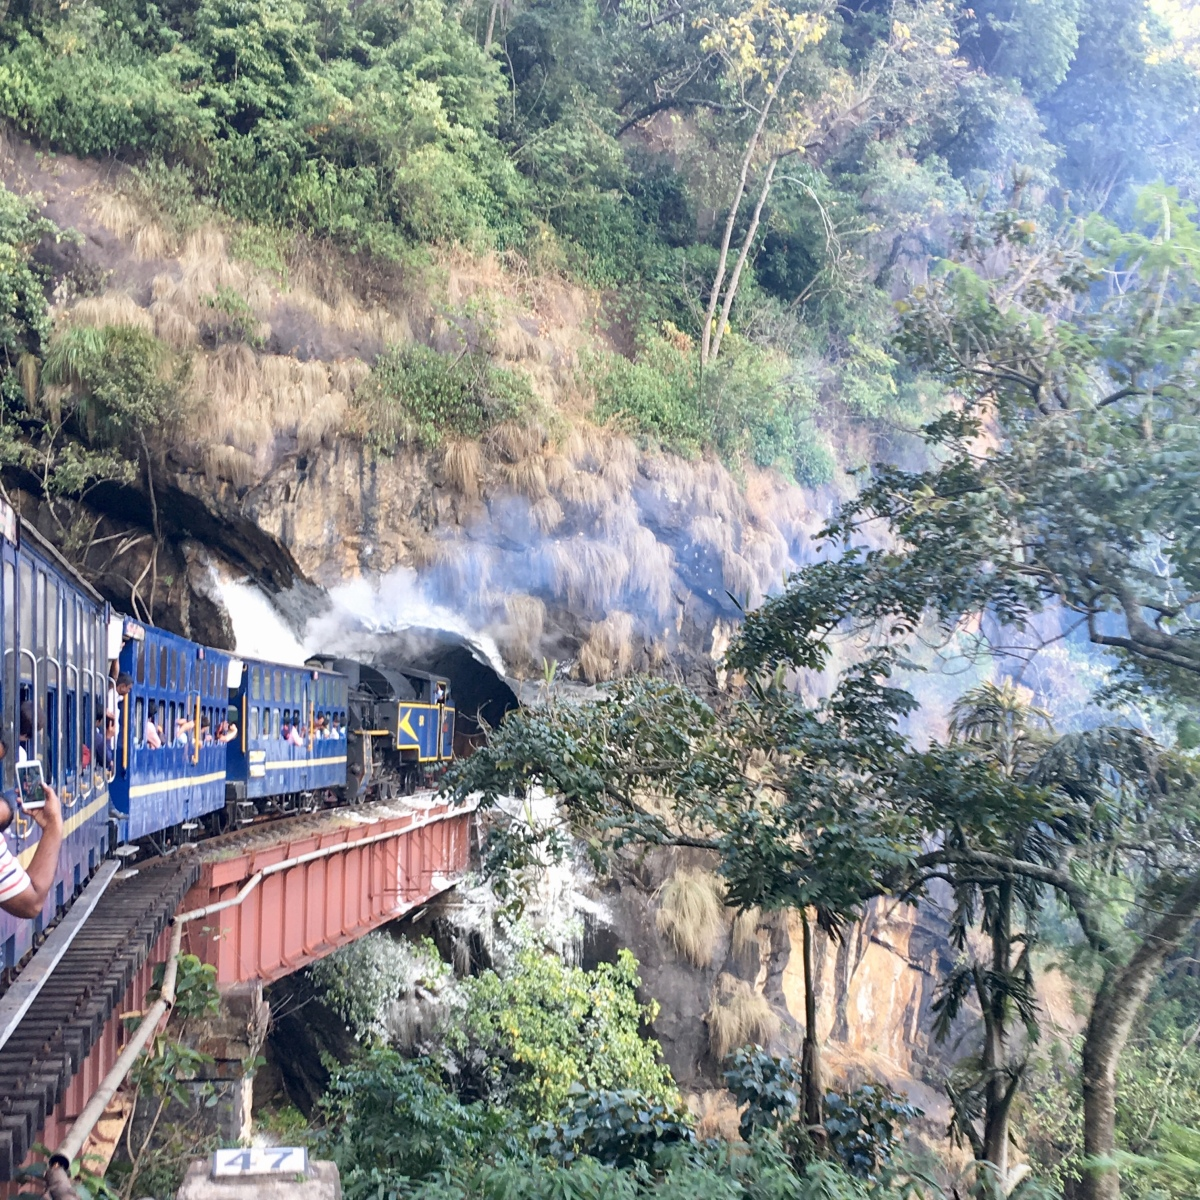 Tea train (Blue Mountains train)